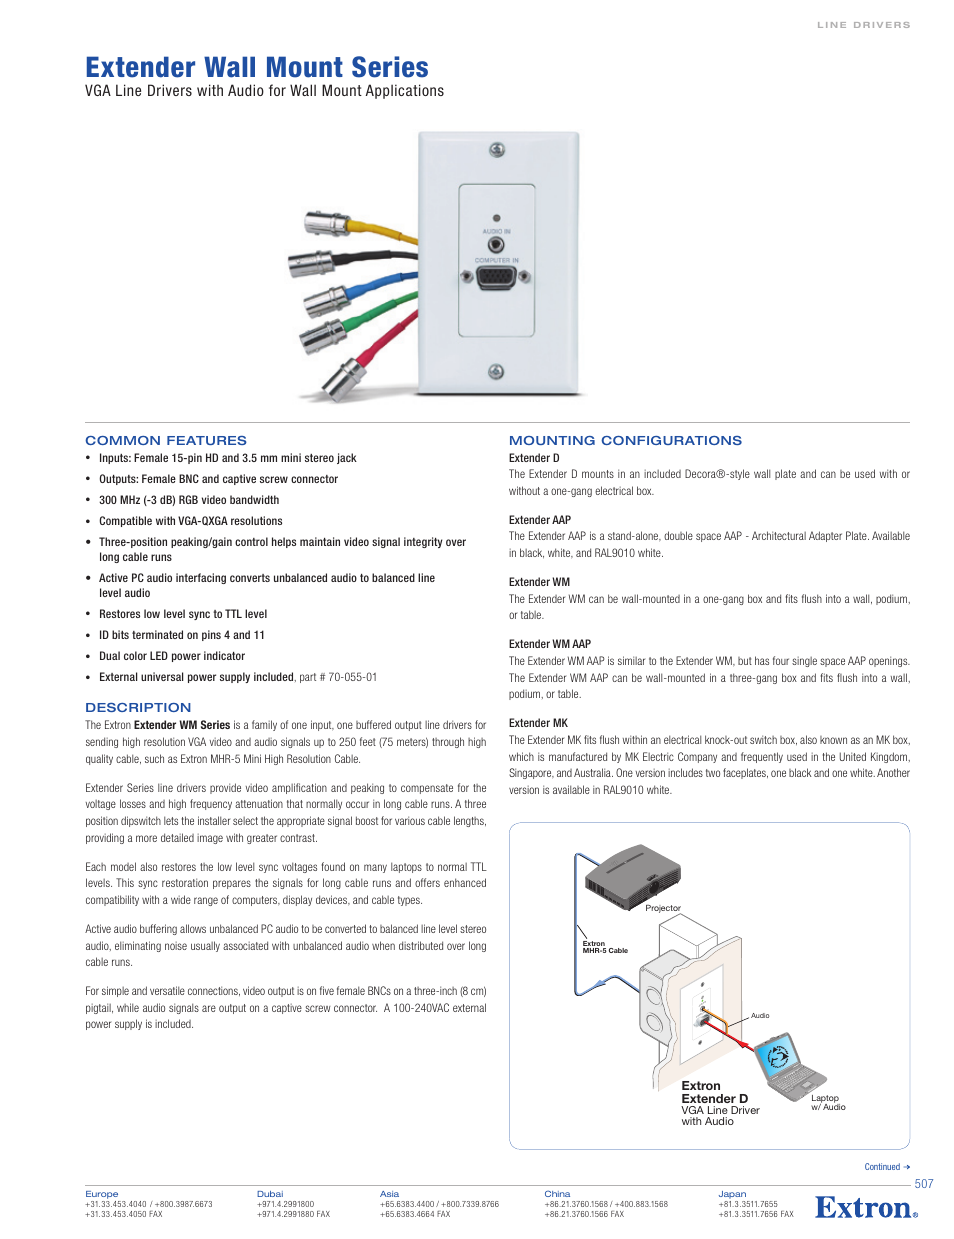 Extron electronic Extender Wall Mount Series User Manual | 4